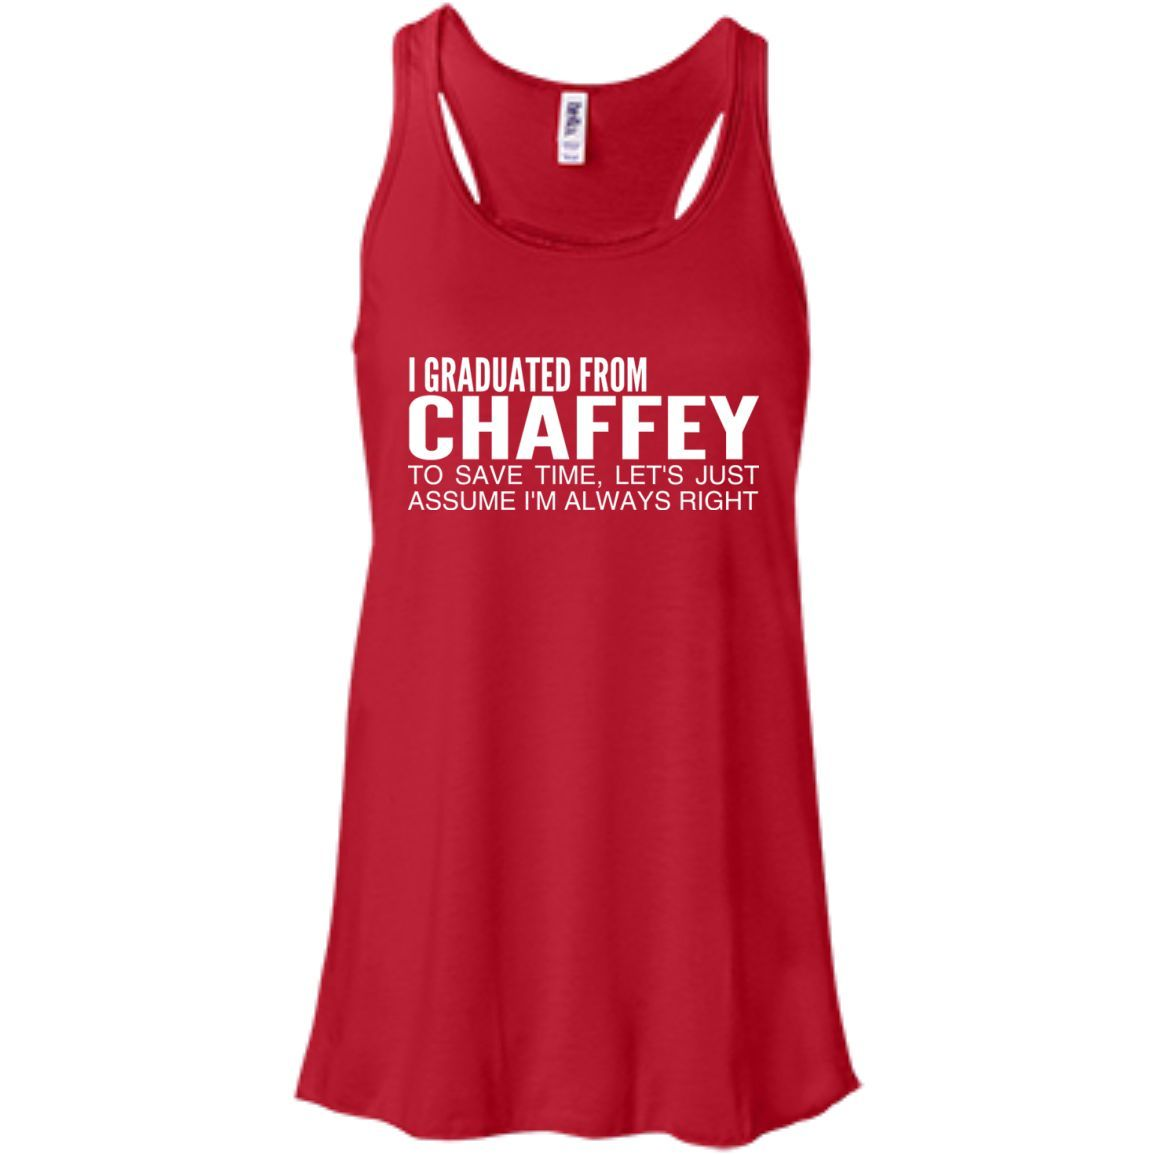 I Graduated From Chaffey To Save Time Lets Just Assume Im Always Right Flowy Racerback Tanks